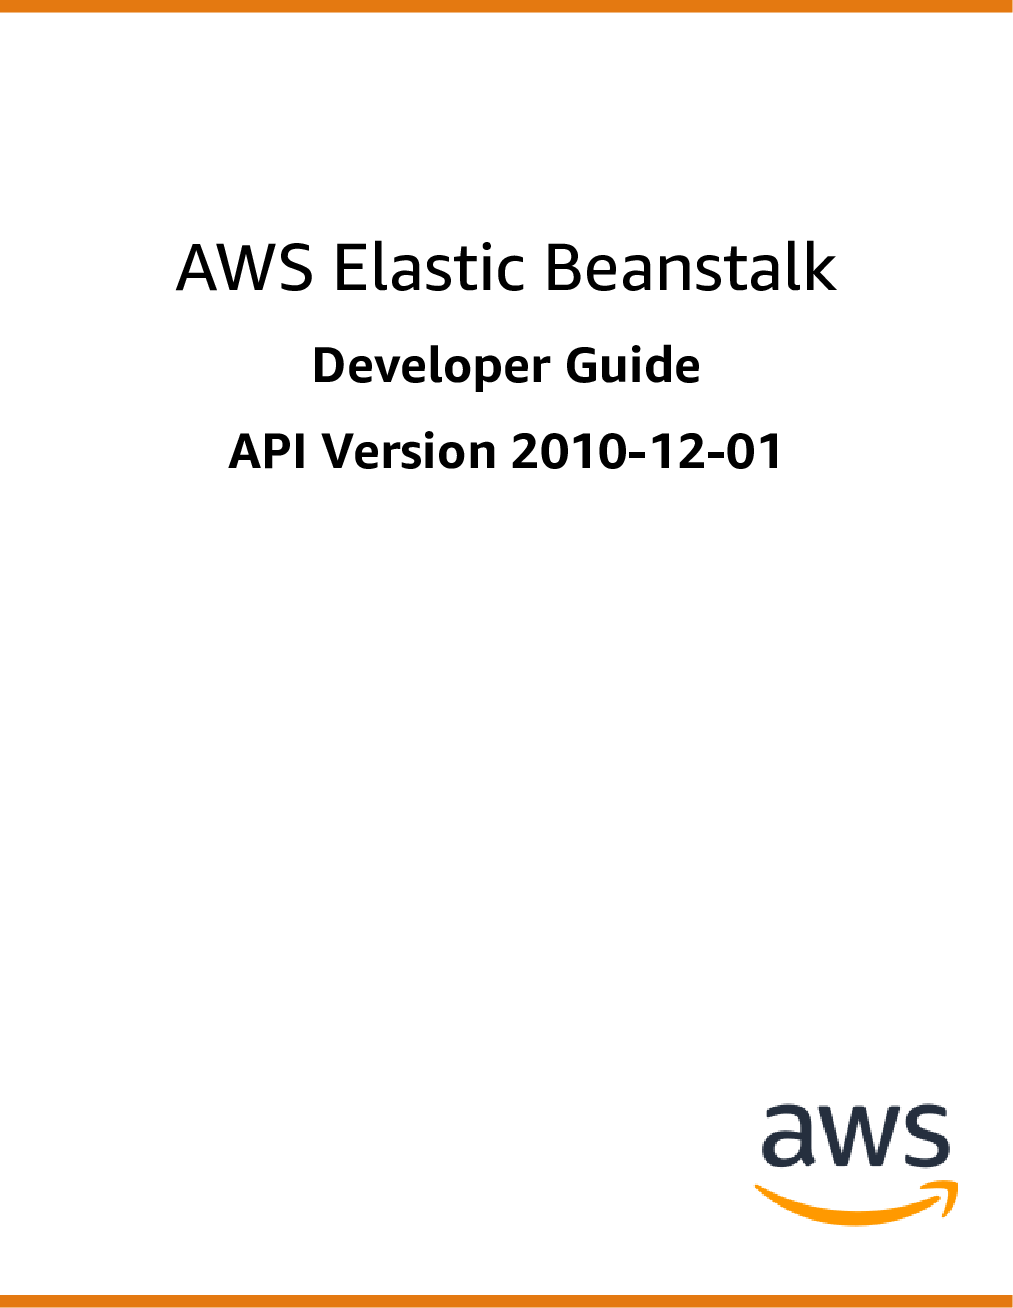 AWS Elastic Beanstalk Developer Guide